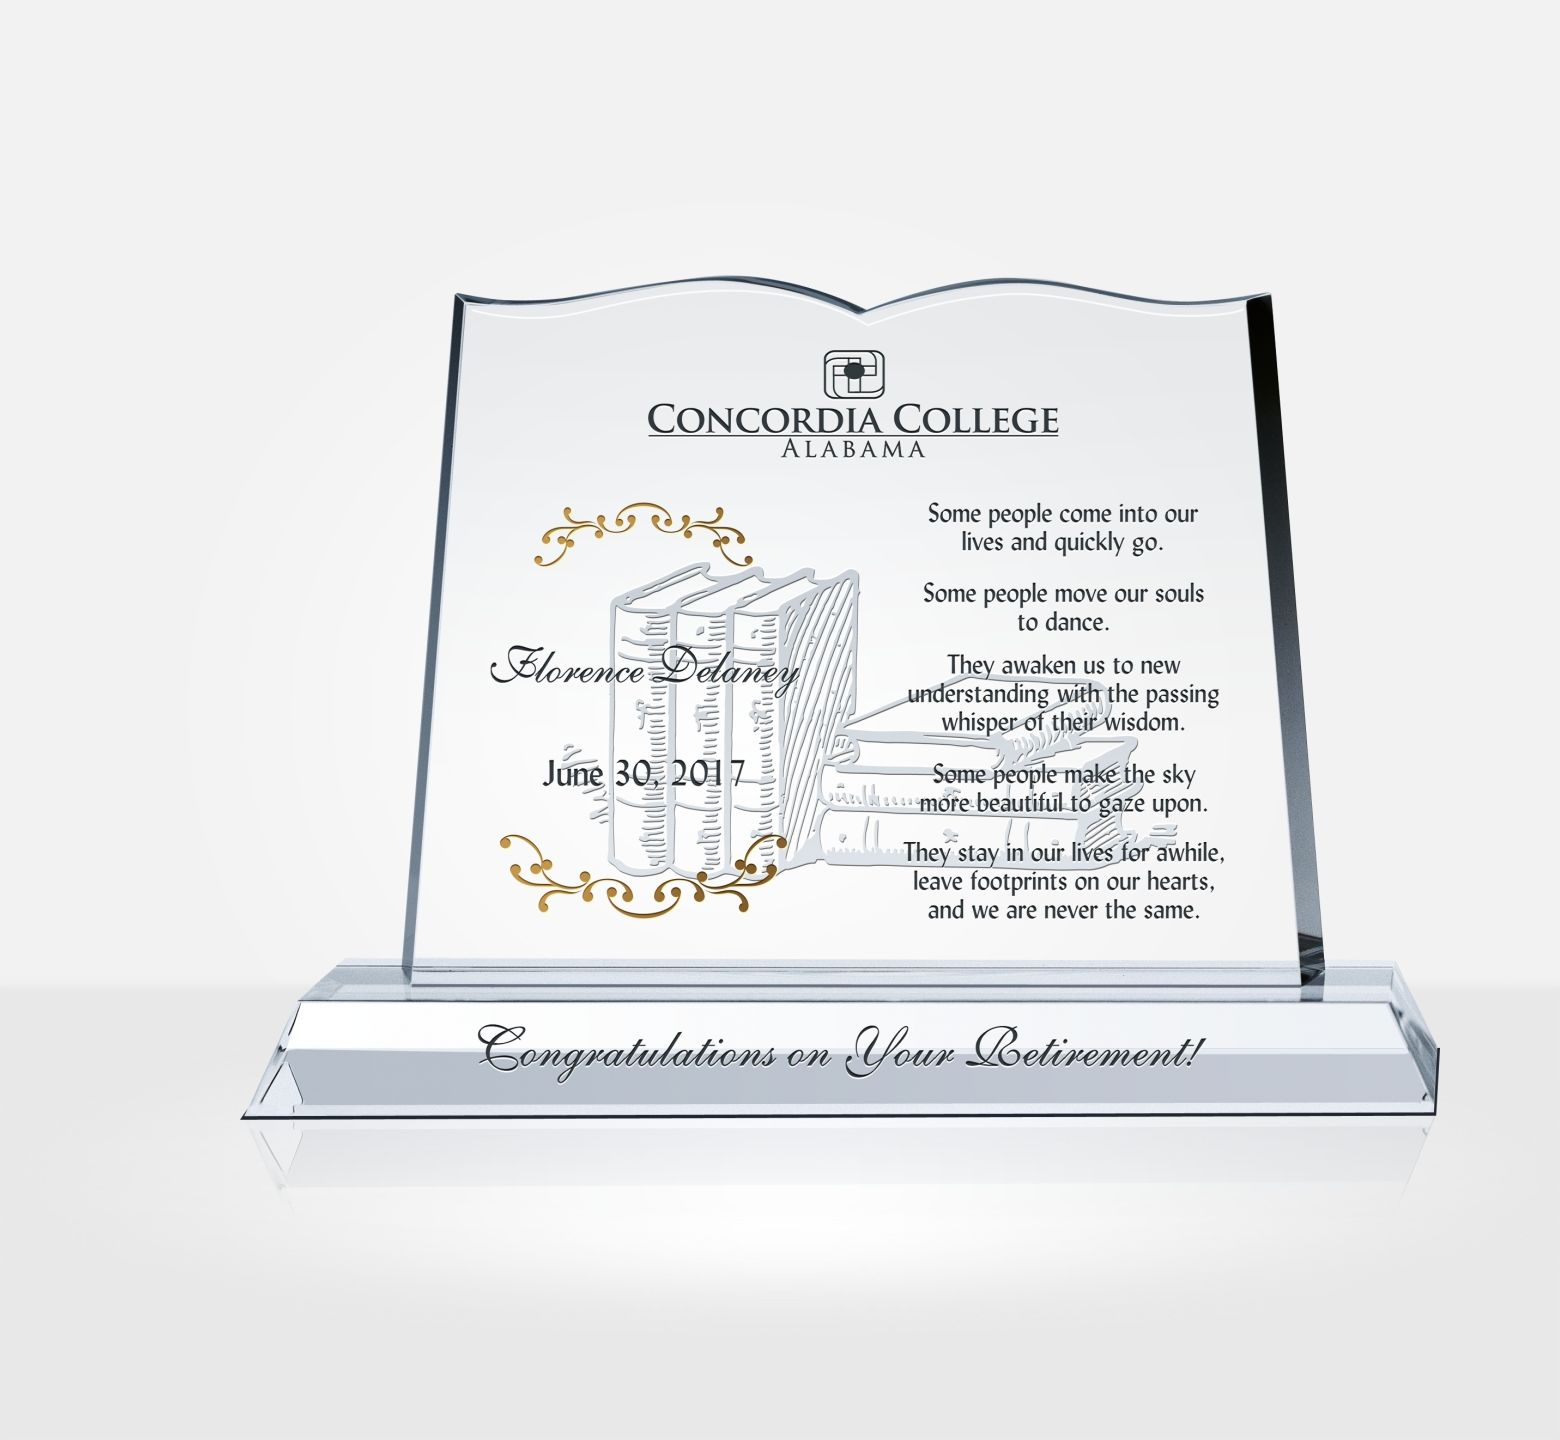 College Award Plaques | www.topsimages.com